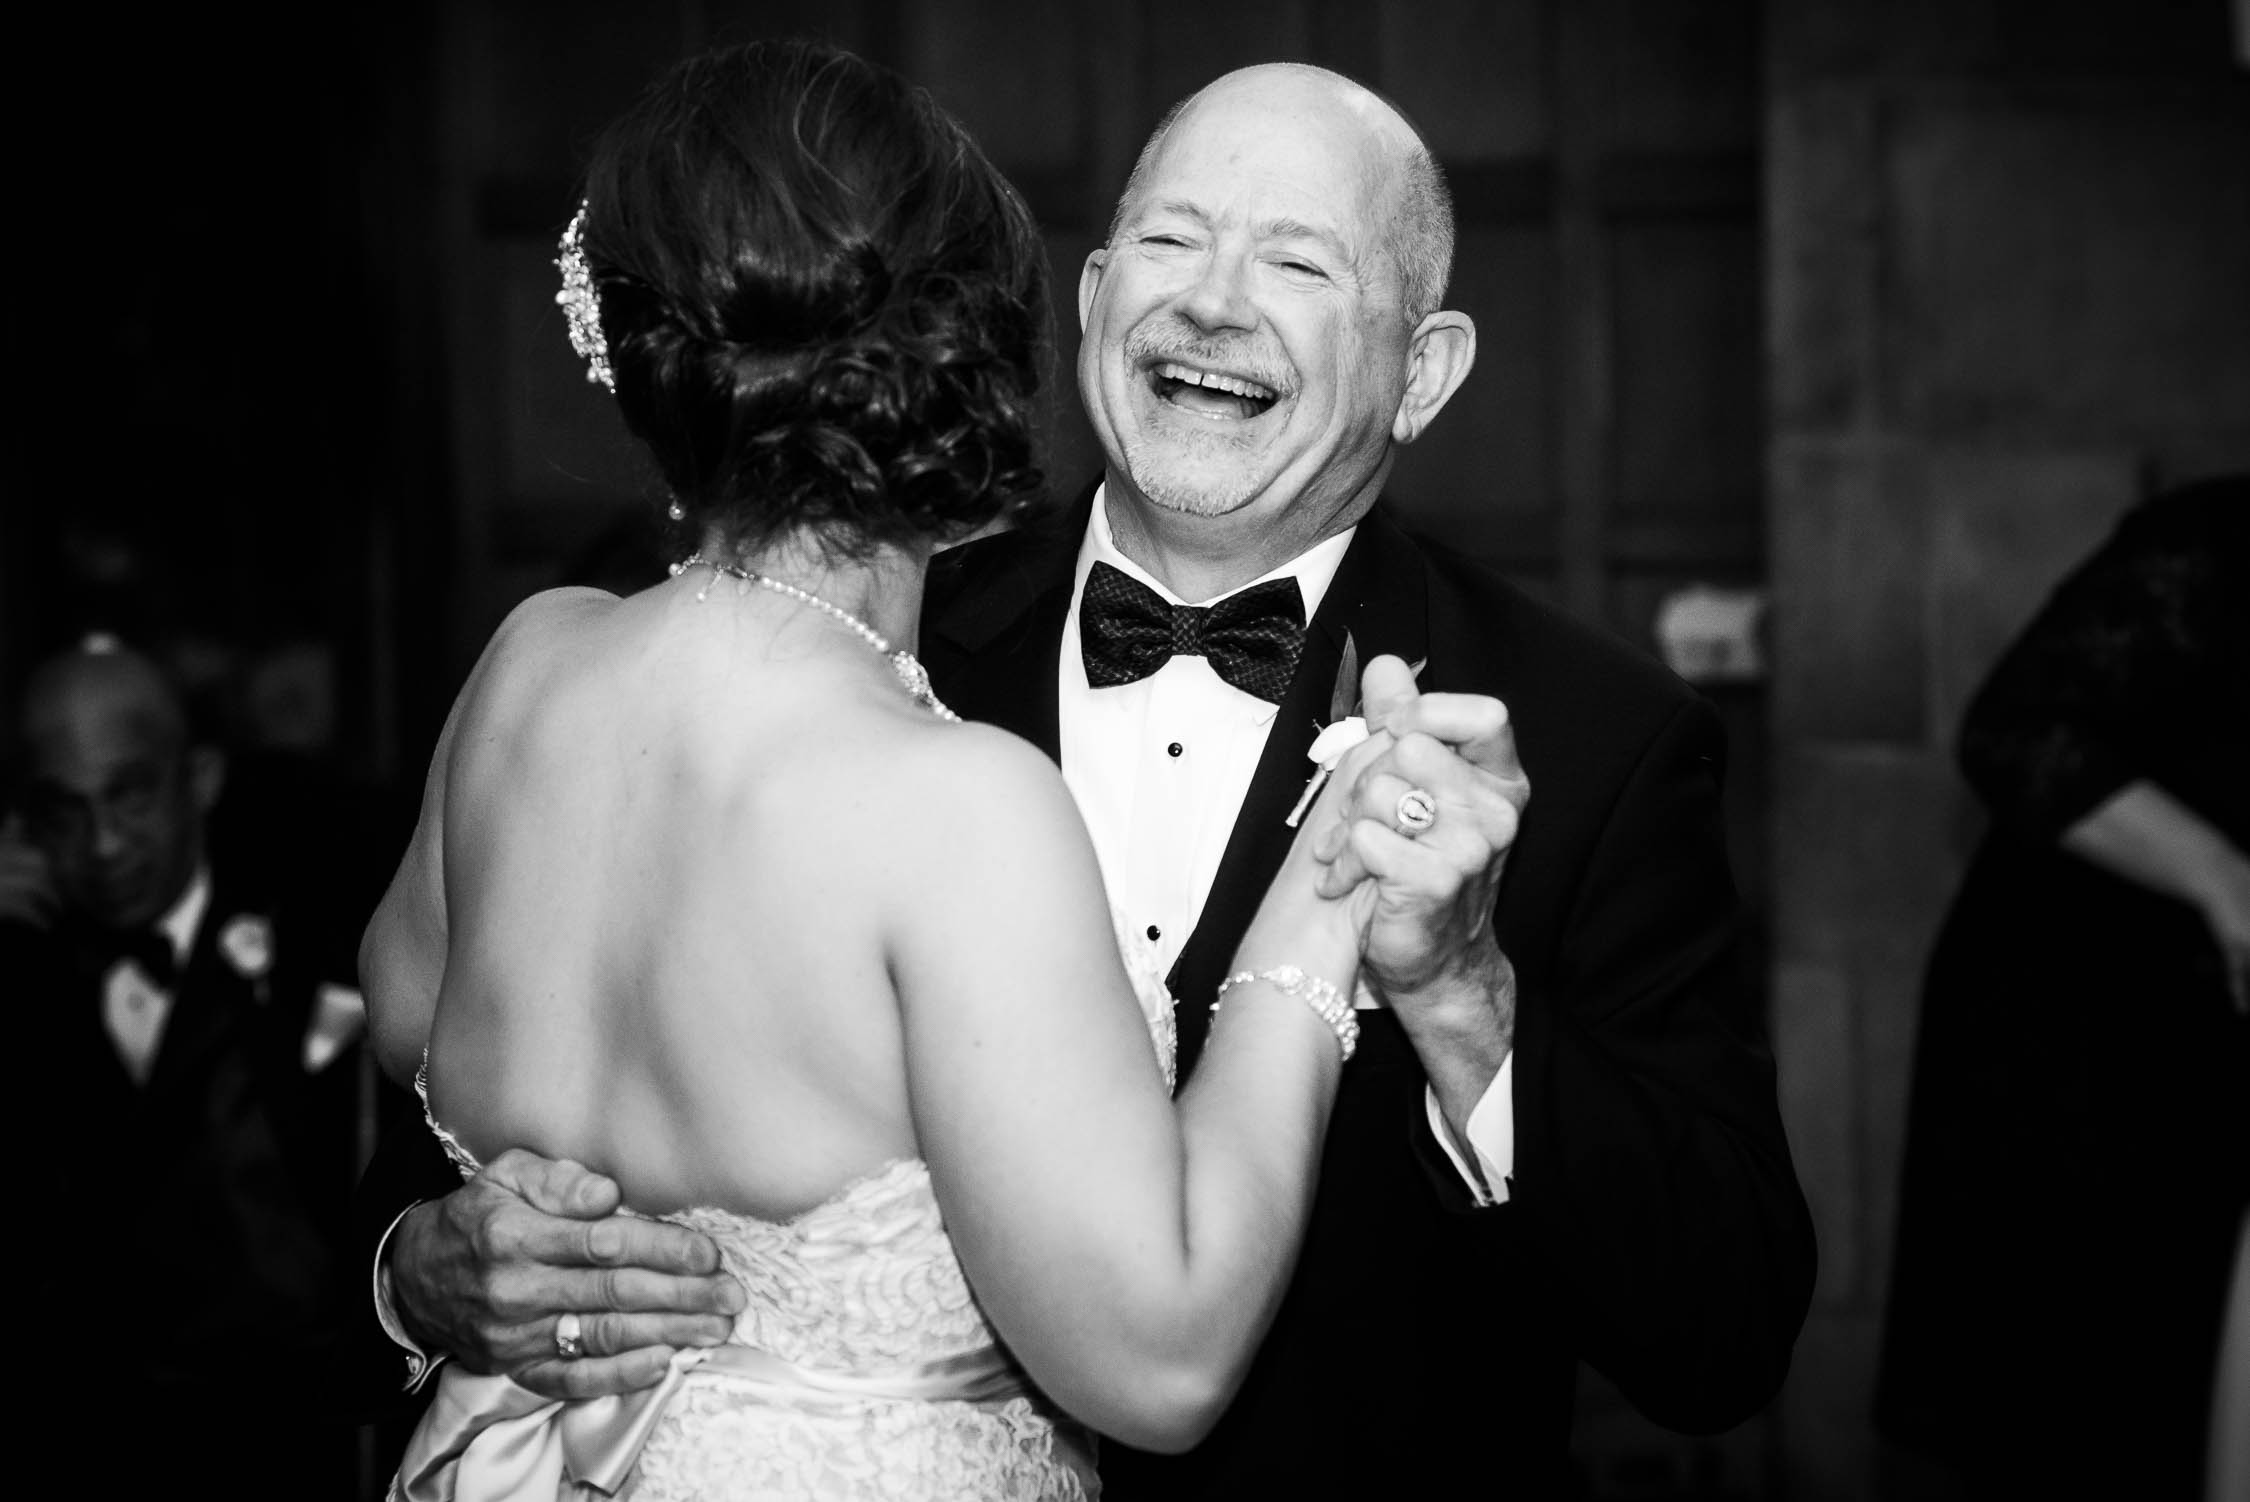 Father and daughter dance during a wedding at the Quadrangle Club of Chicago.